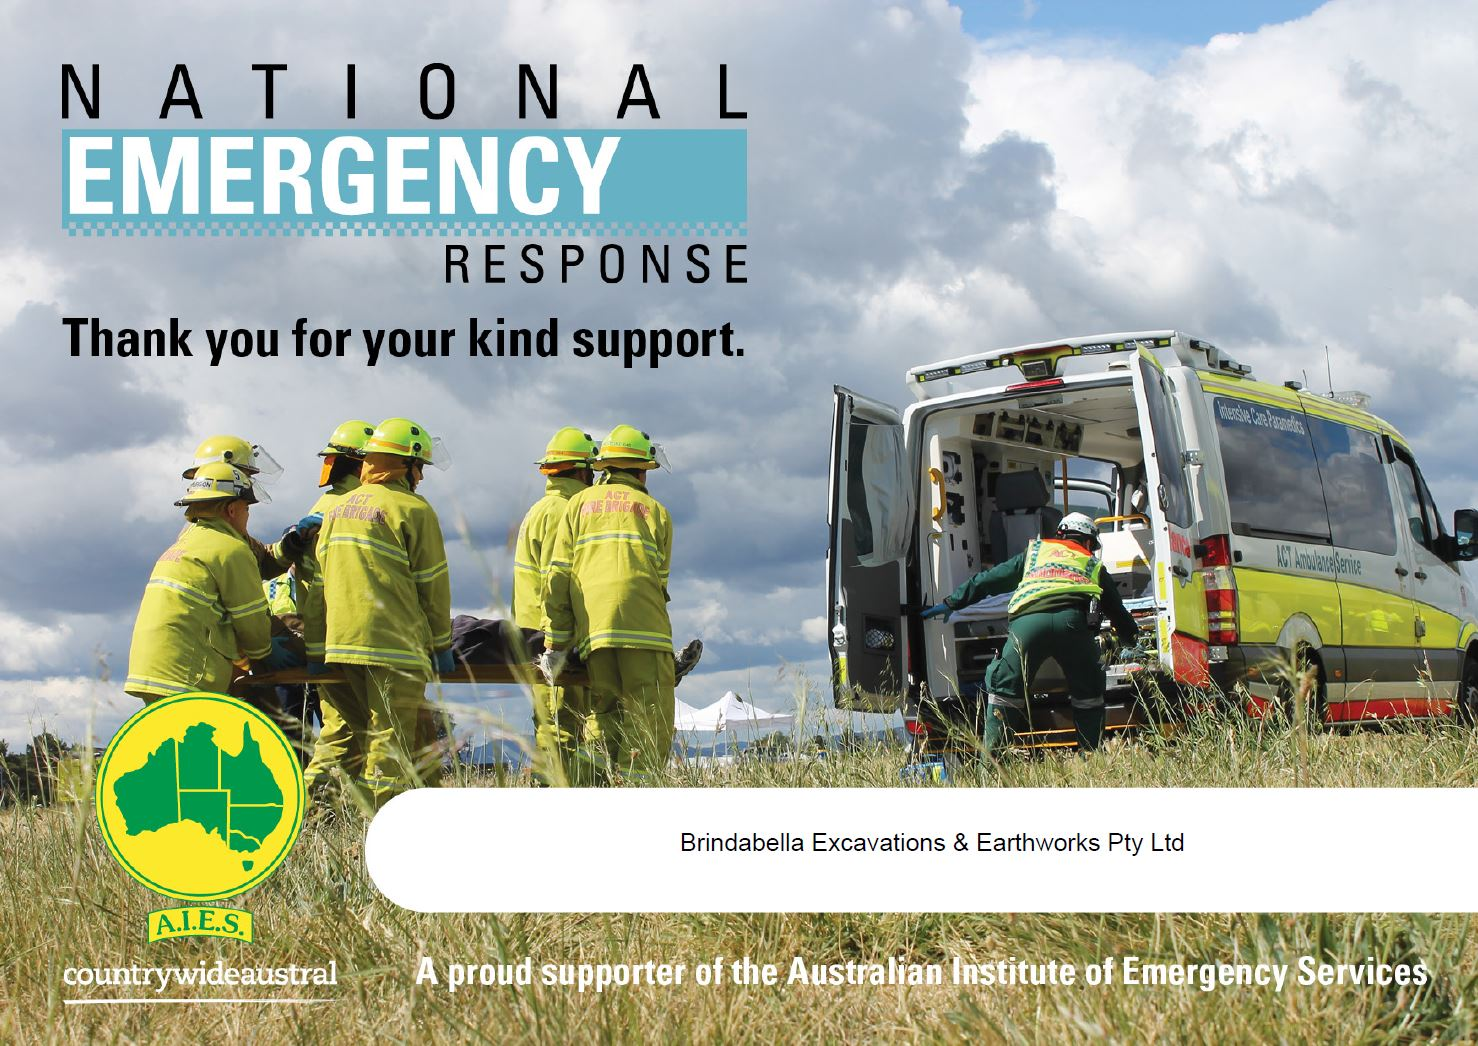 Emergency services support